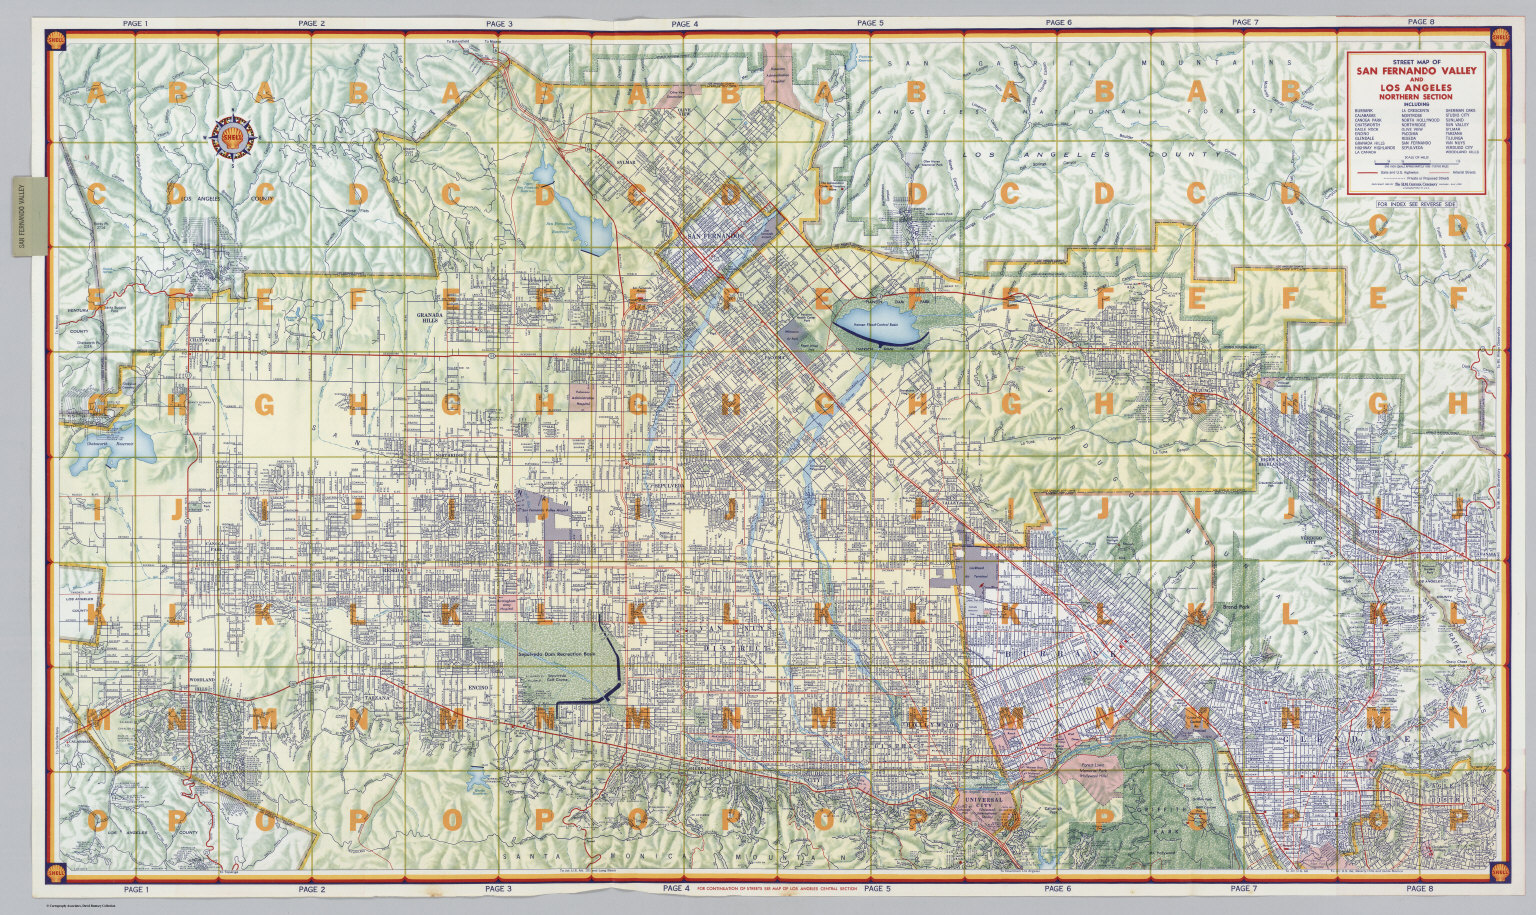 Street Map of San Fernando Valley and Los Angeles Northern Section